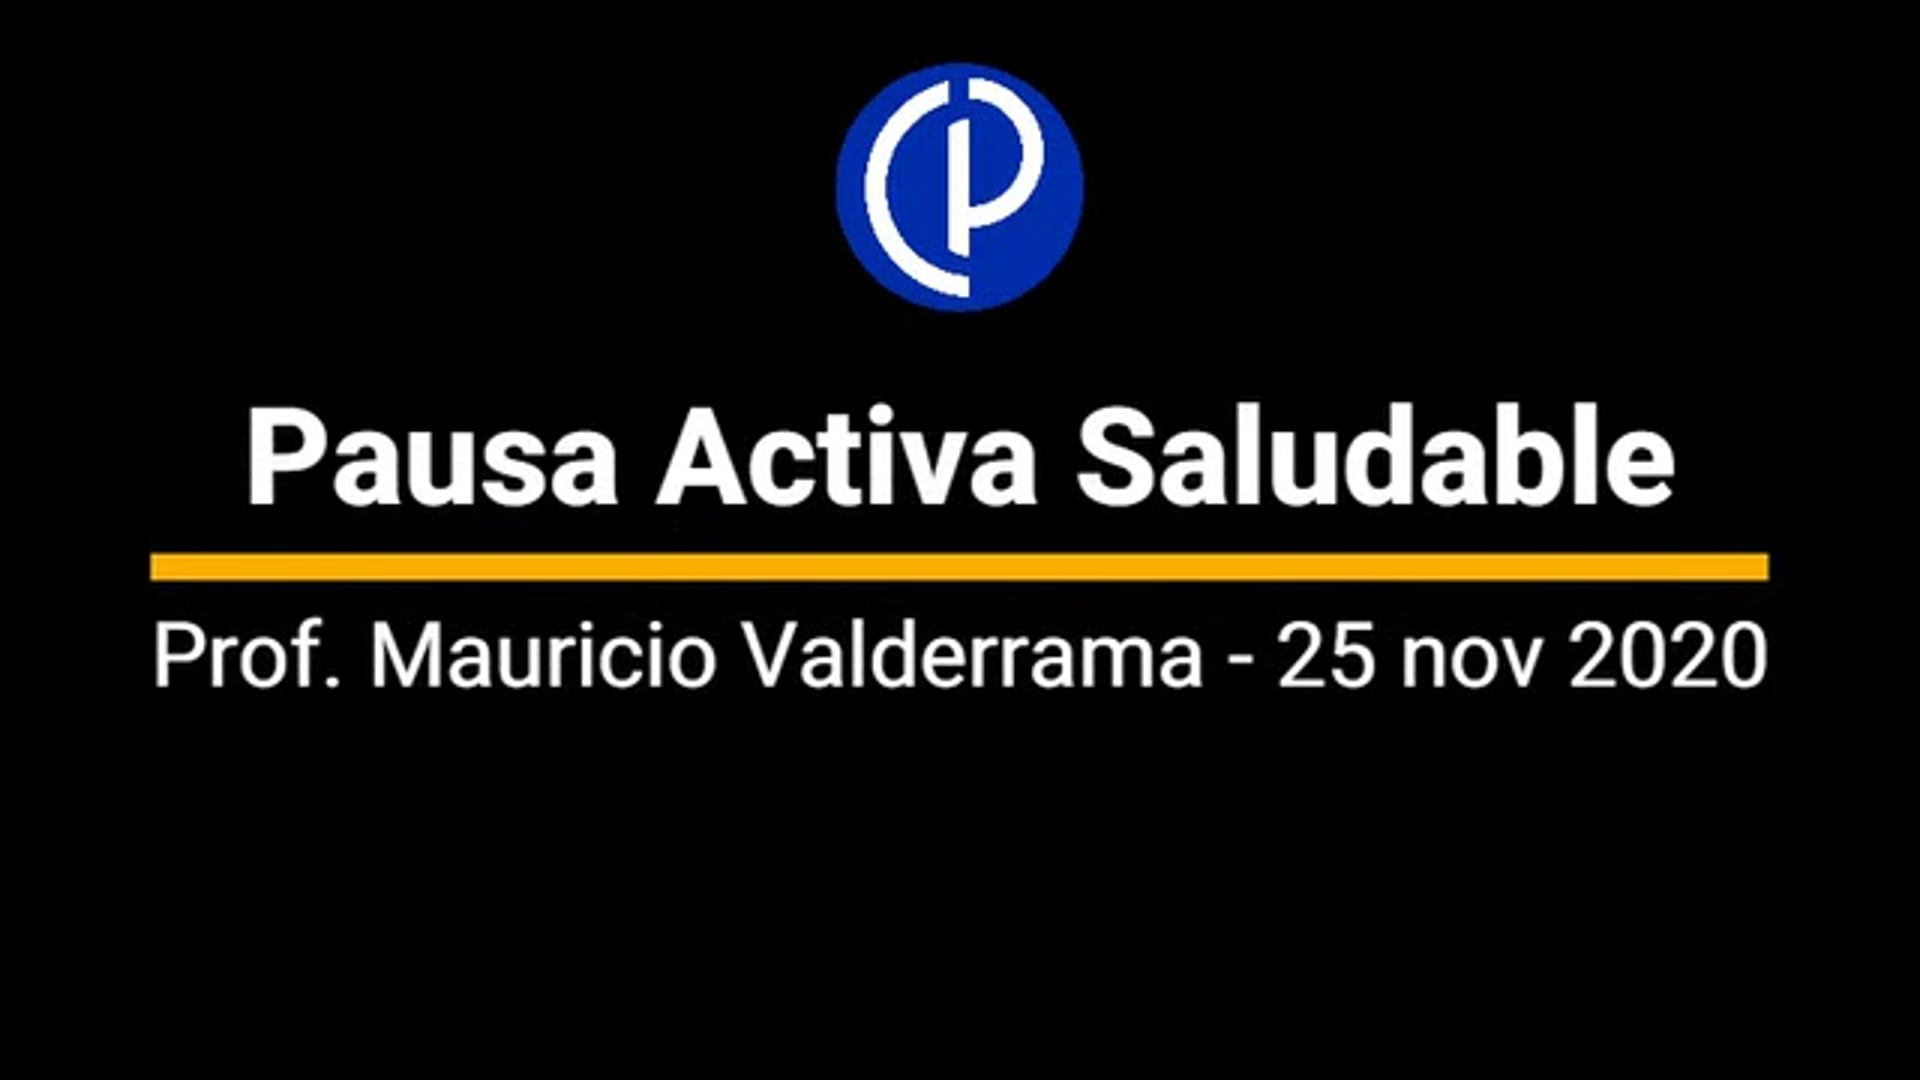 CP-Pausa Activa Saludable 2020-11-25